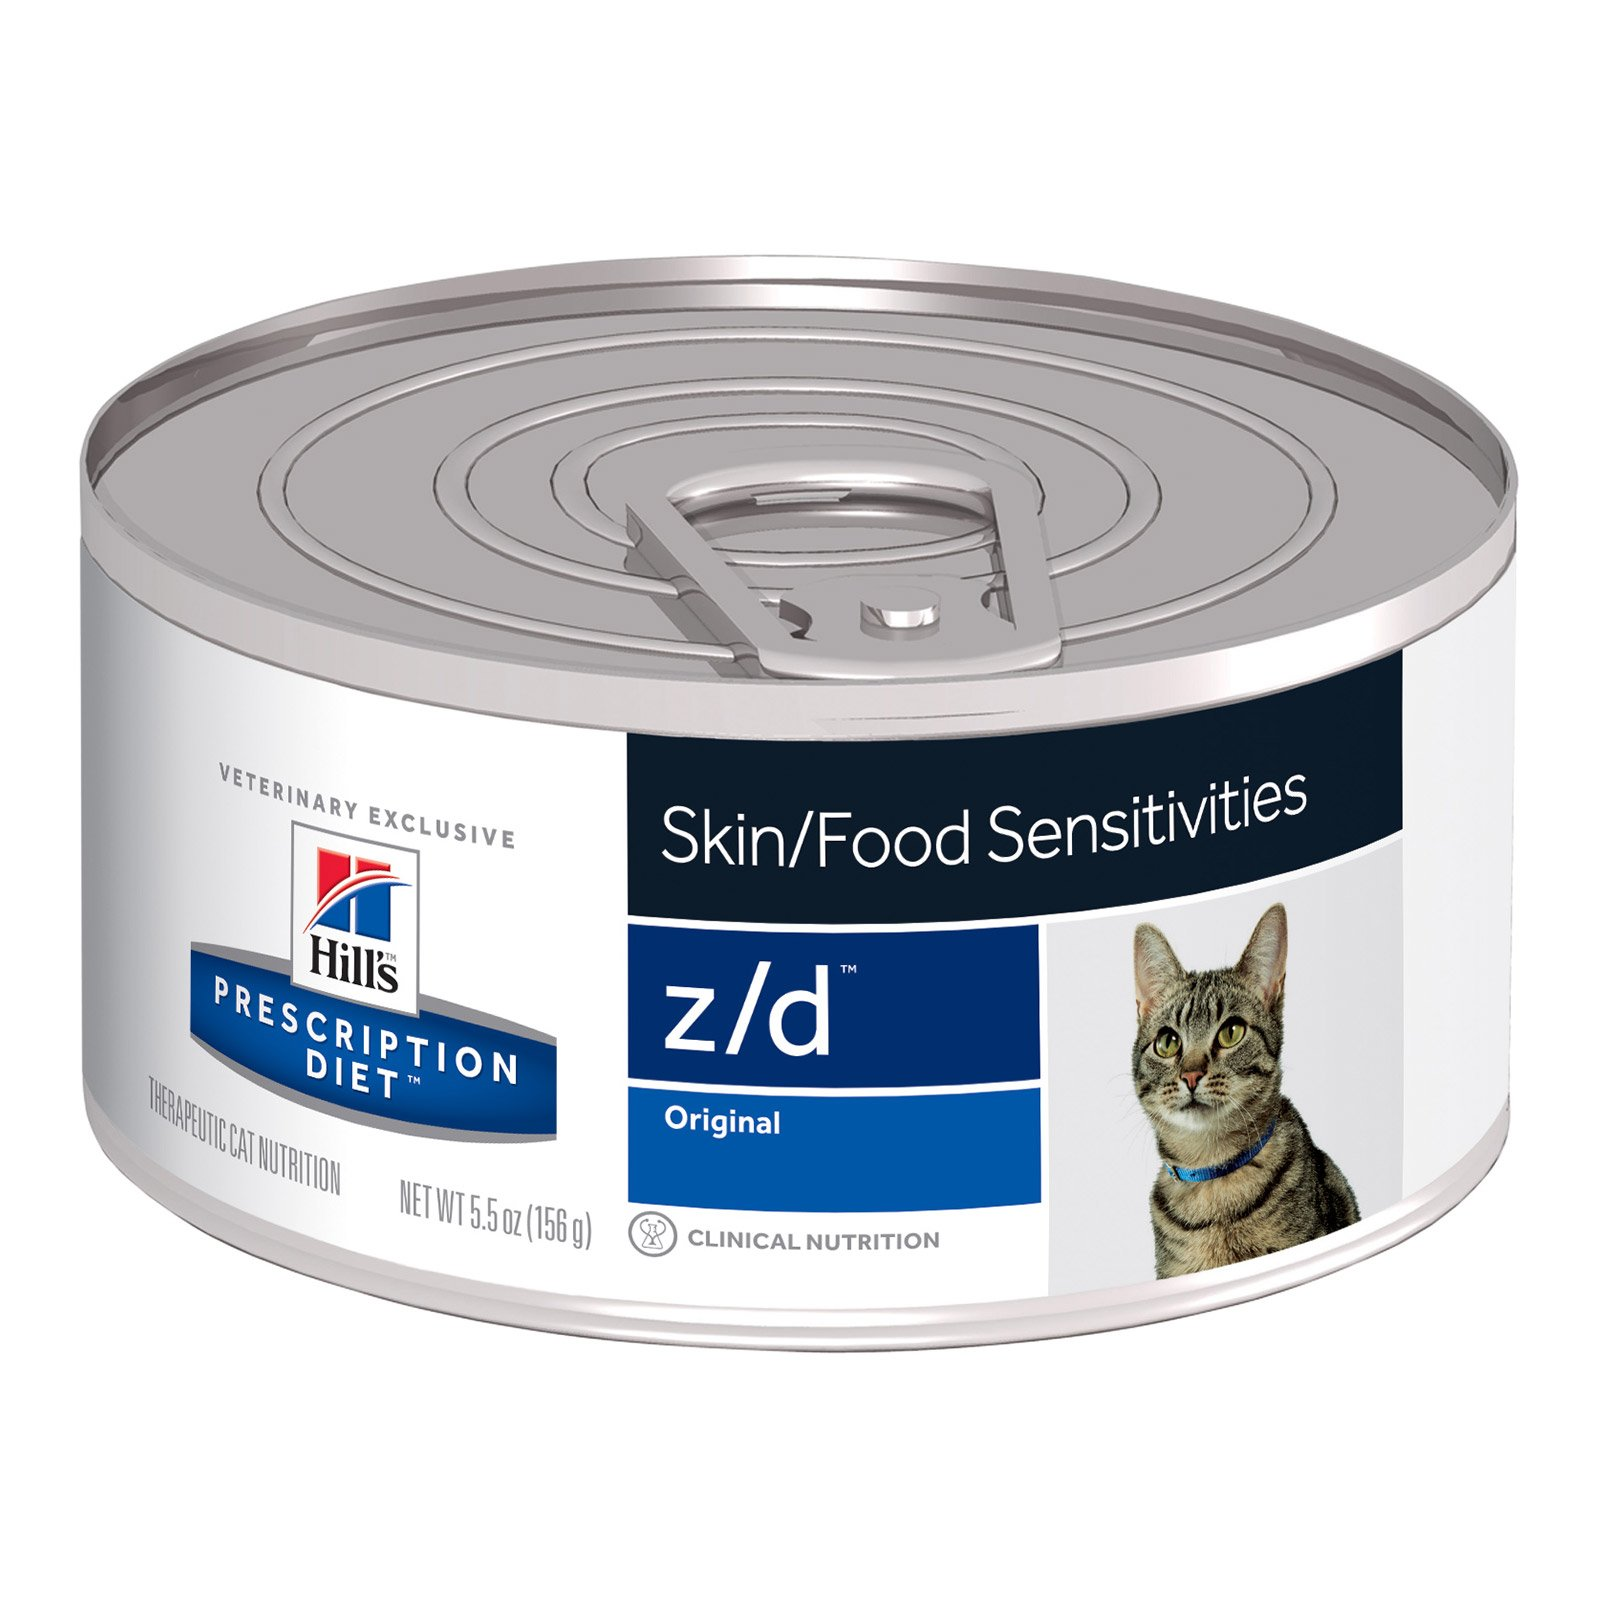 Hill's Prescription Diet Z/D Skin/Food Sensitivities Canned Cat Food 156 Gm 24 Cans